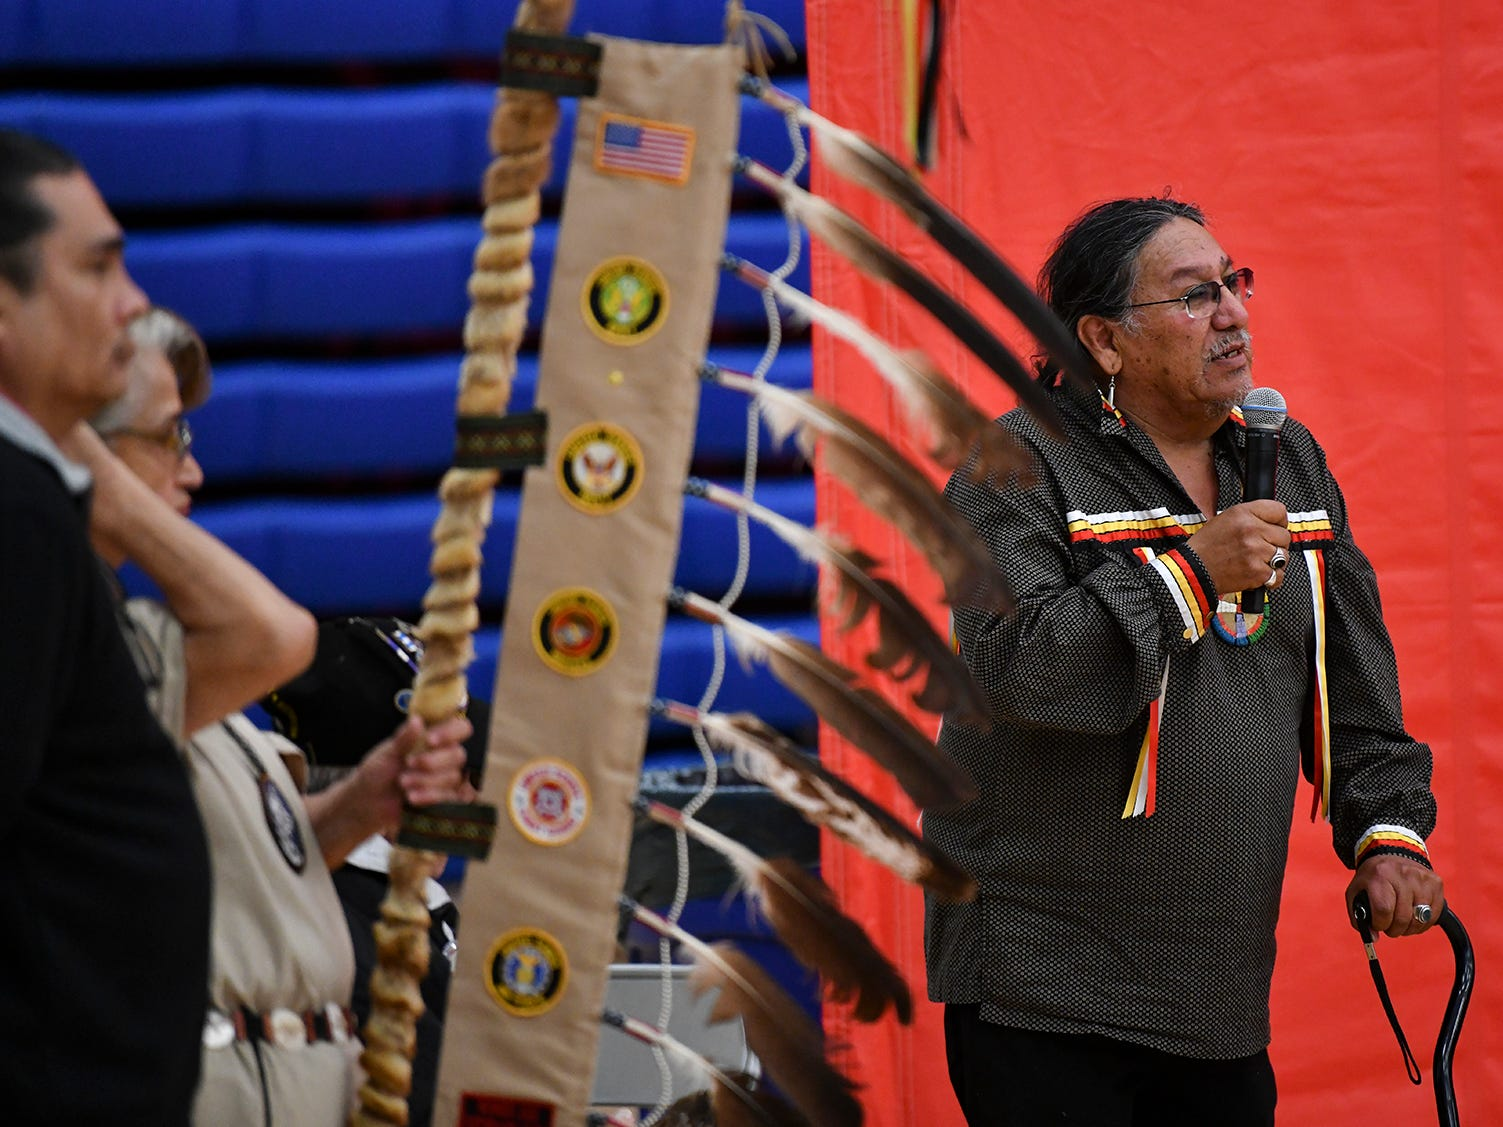 Spiritual advisor Joe Whitehawk speaks before the start of the 25th annual American Indian Center Powwow Saturday, April 13, at Apollo High School in St. Cloud.